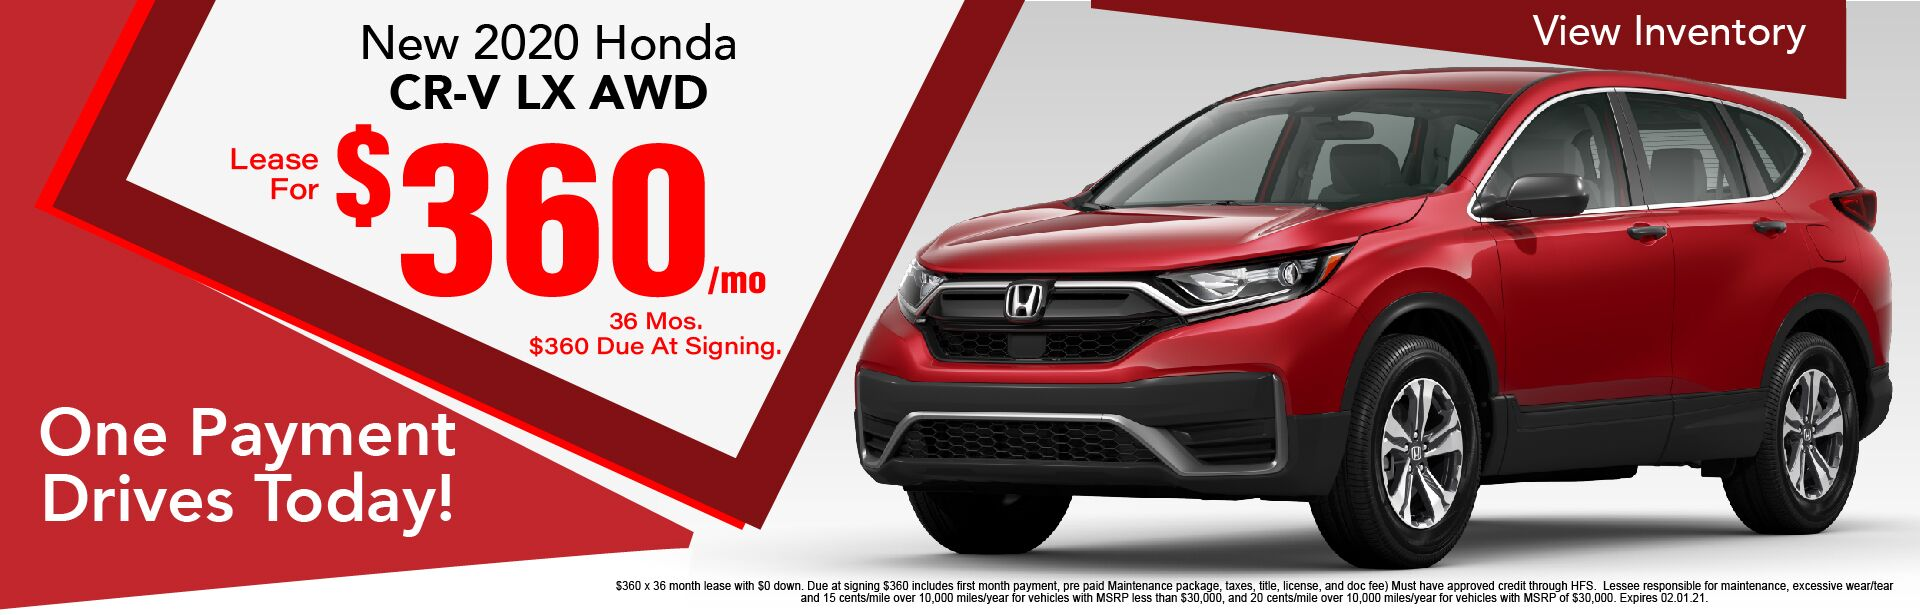 2020 Honda CR-V LX AWD Lease $360 / Month x 36 Months